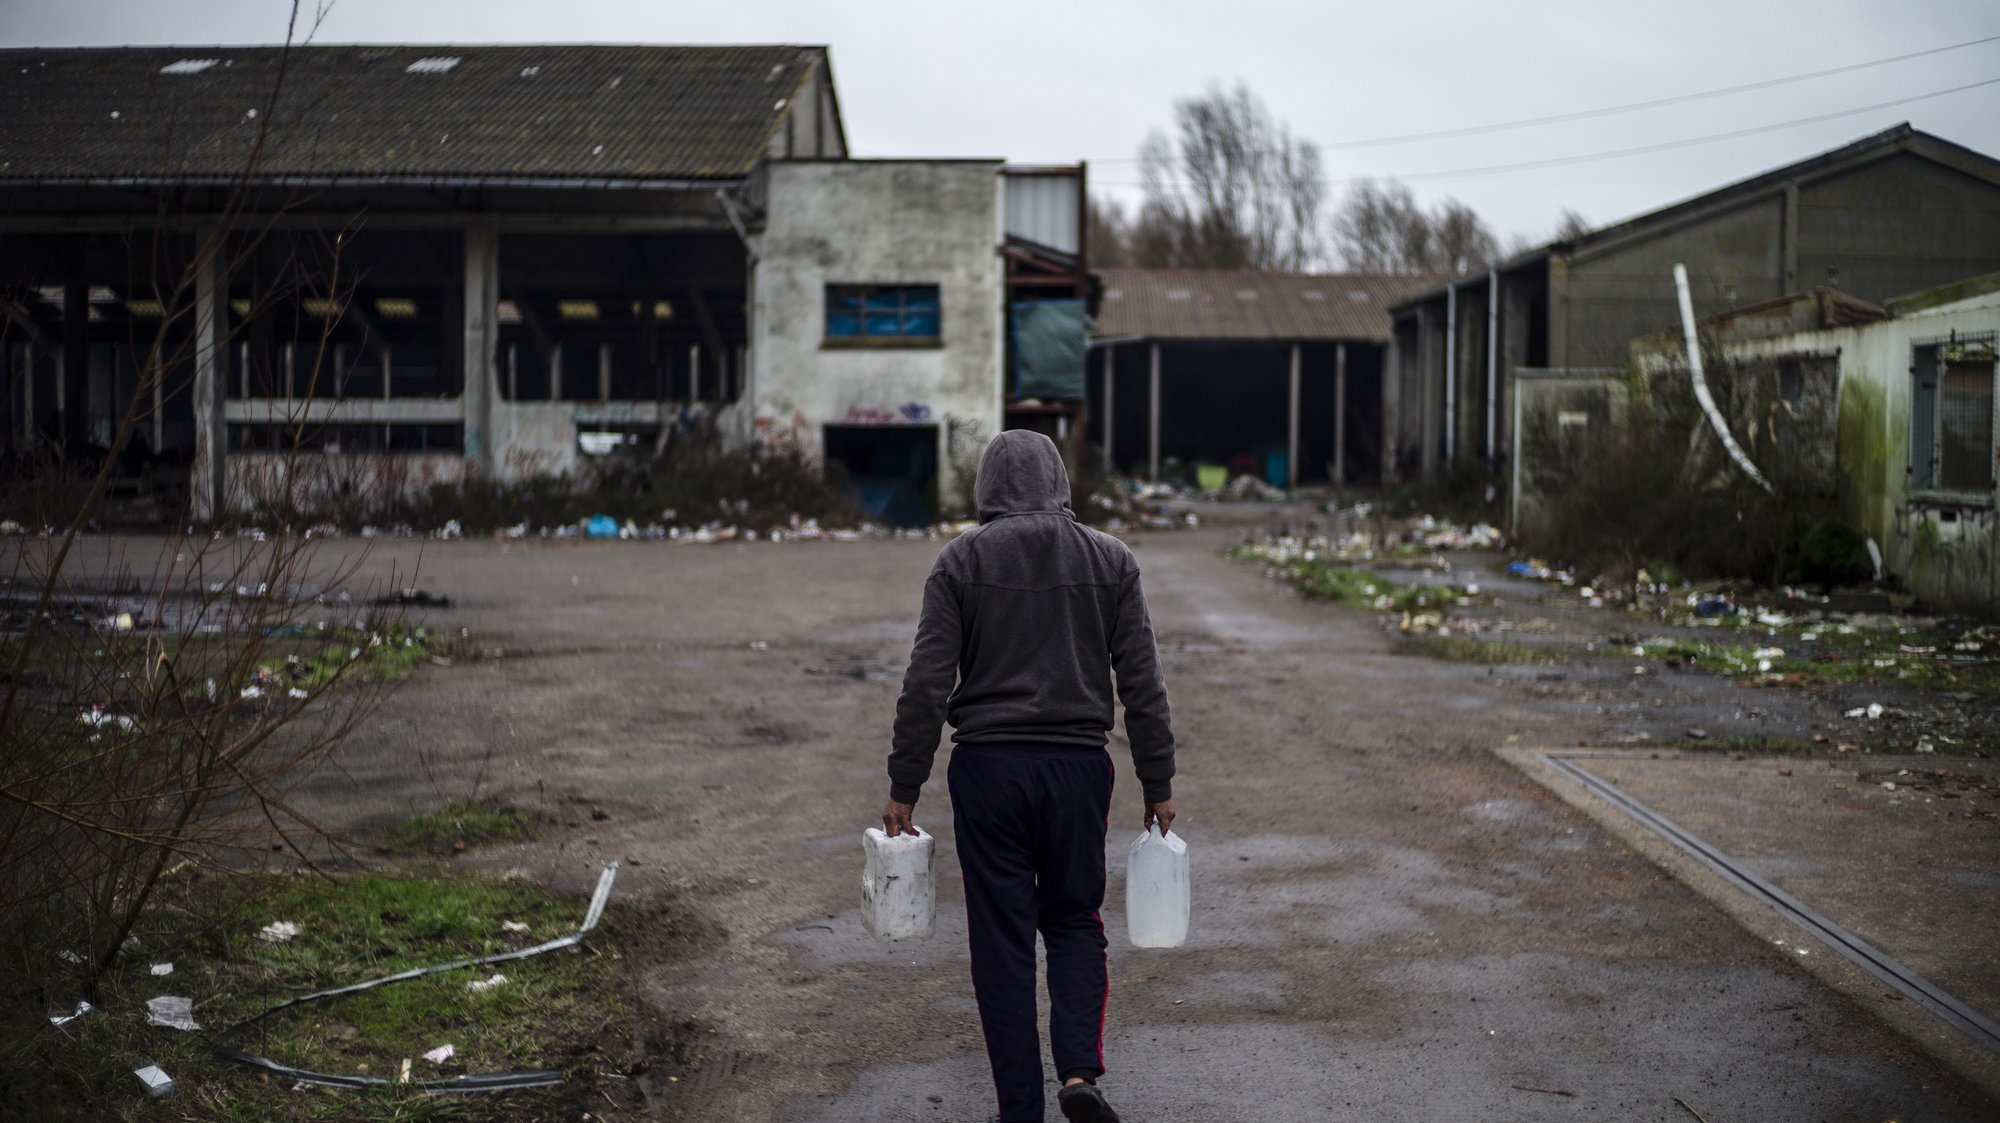 epa08179161 A refugee carries water inside the makeshift migrant camp in Grande-Synthe, near Dunkerque, France, 30 January 2020. The camp in Grande-Synthe counts an estimated 500 residents mostly composed of Kurds from Iraq. They are still hoping to reach United Kingdom even if Britain is due to leave the European Union on 31 January 2020.  EPA/YOAN VALAT